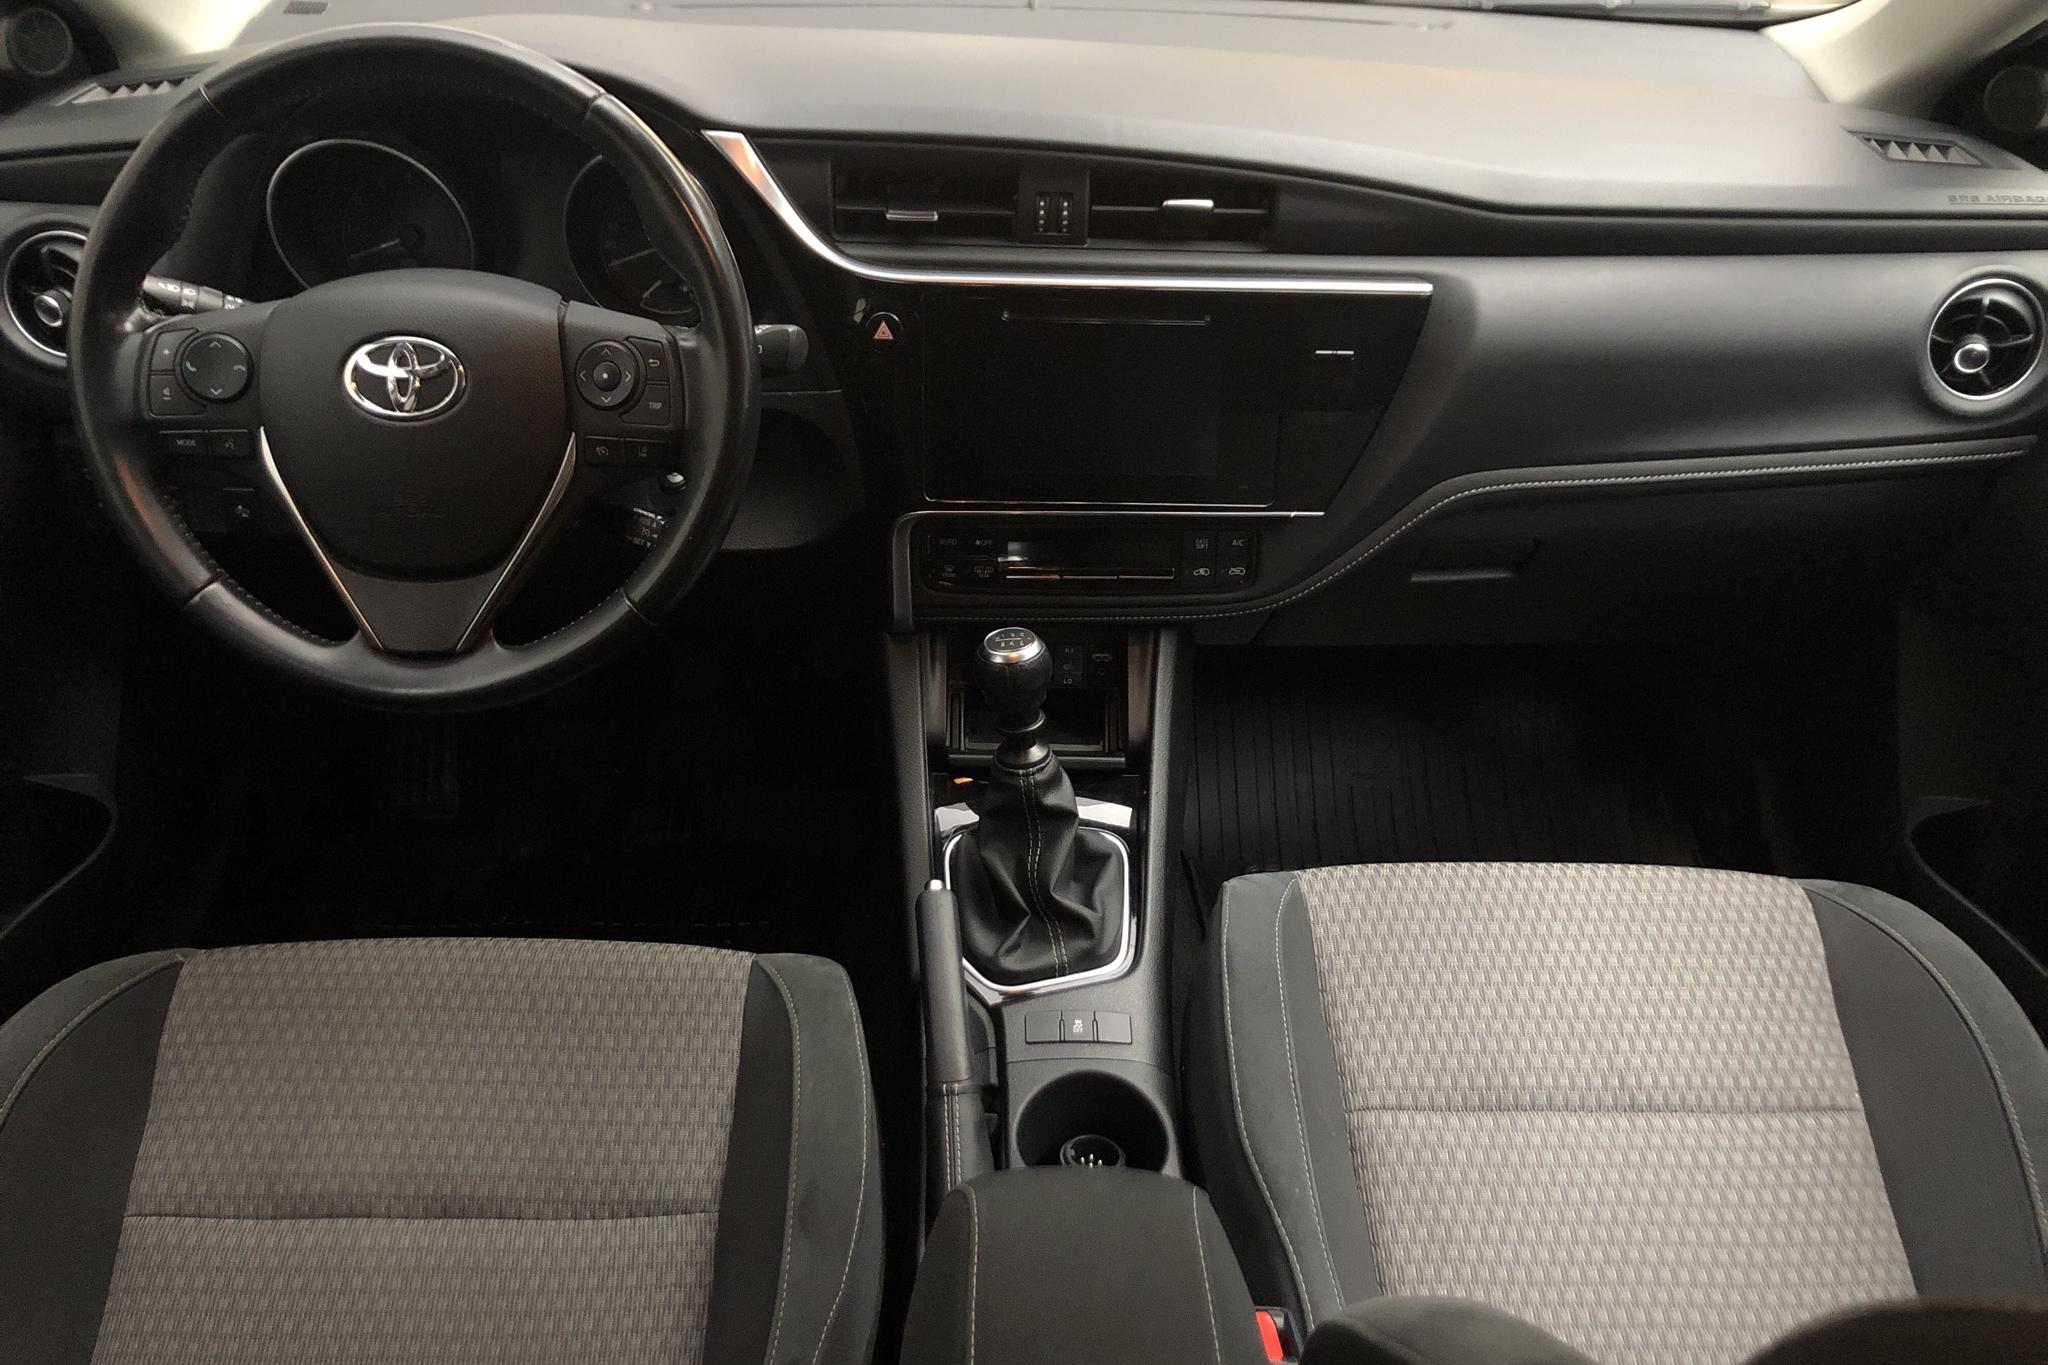 Toyota auris touring sports review betting kings sports betting africa